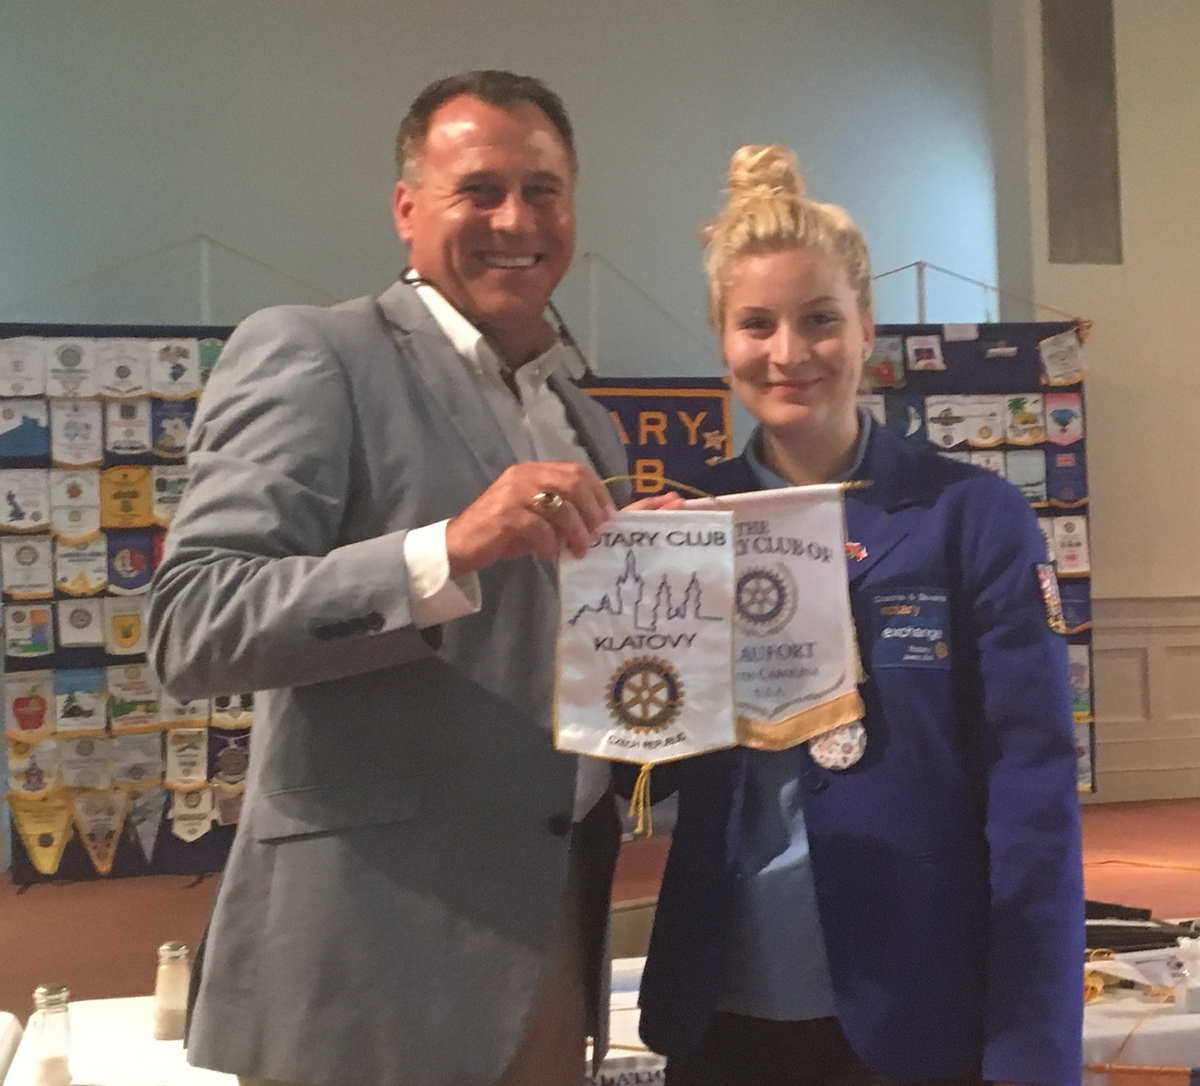 As one of it major programs, the Rotary Club of Beaufort supports exchange students attending Beaufort schools. The first of two exchange students for school year 2016-17 are Karolina Struharova, right, from the Czech Republic. Here, she exchanges the banner from her home Rotary, Klatovy, Czech Republic, with Rotary Club of Beaufort President Willie Mack Stansell. Struharova will be a junior at Beaufort Academy. Photo by Lisa Harrington.